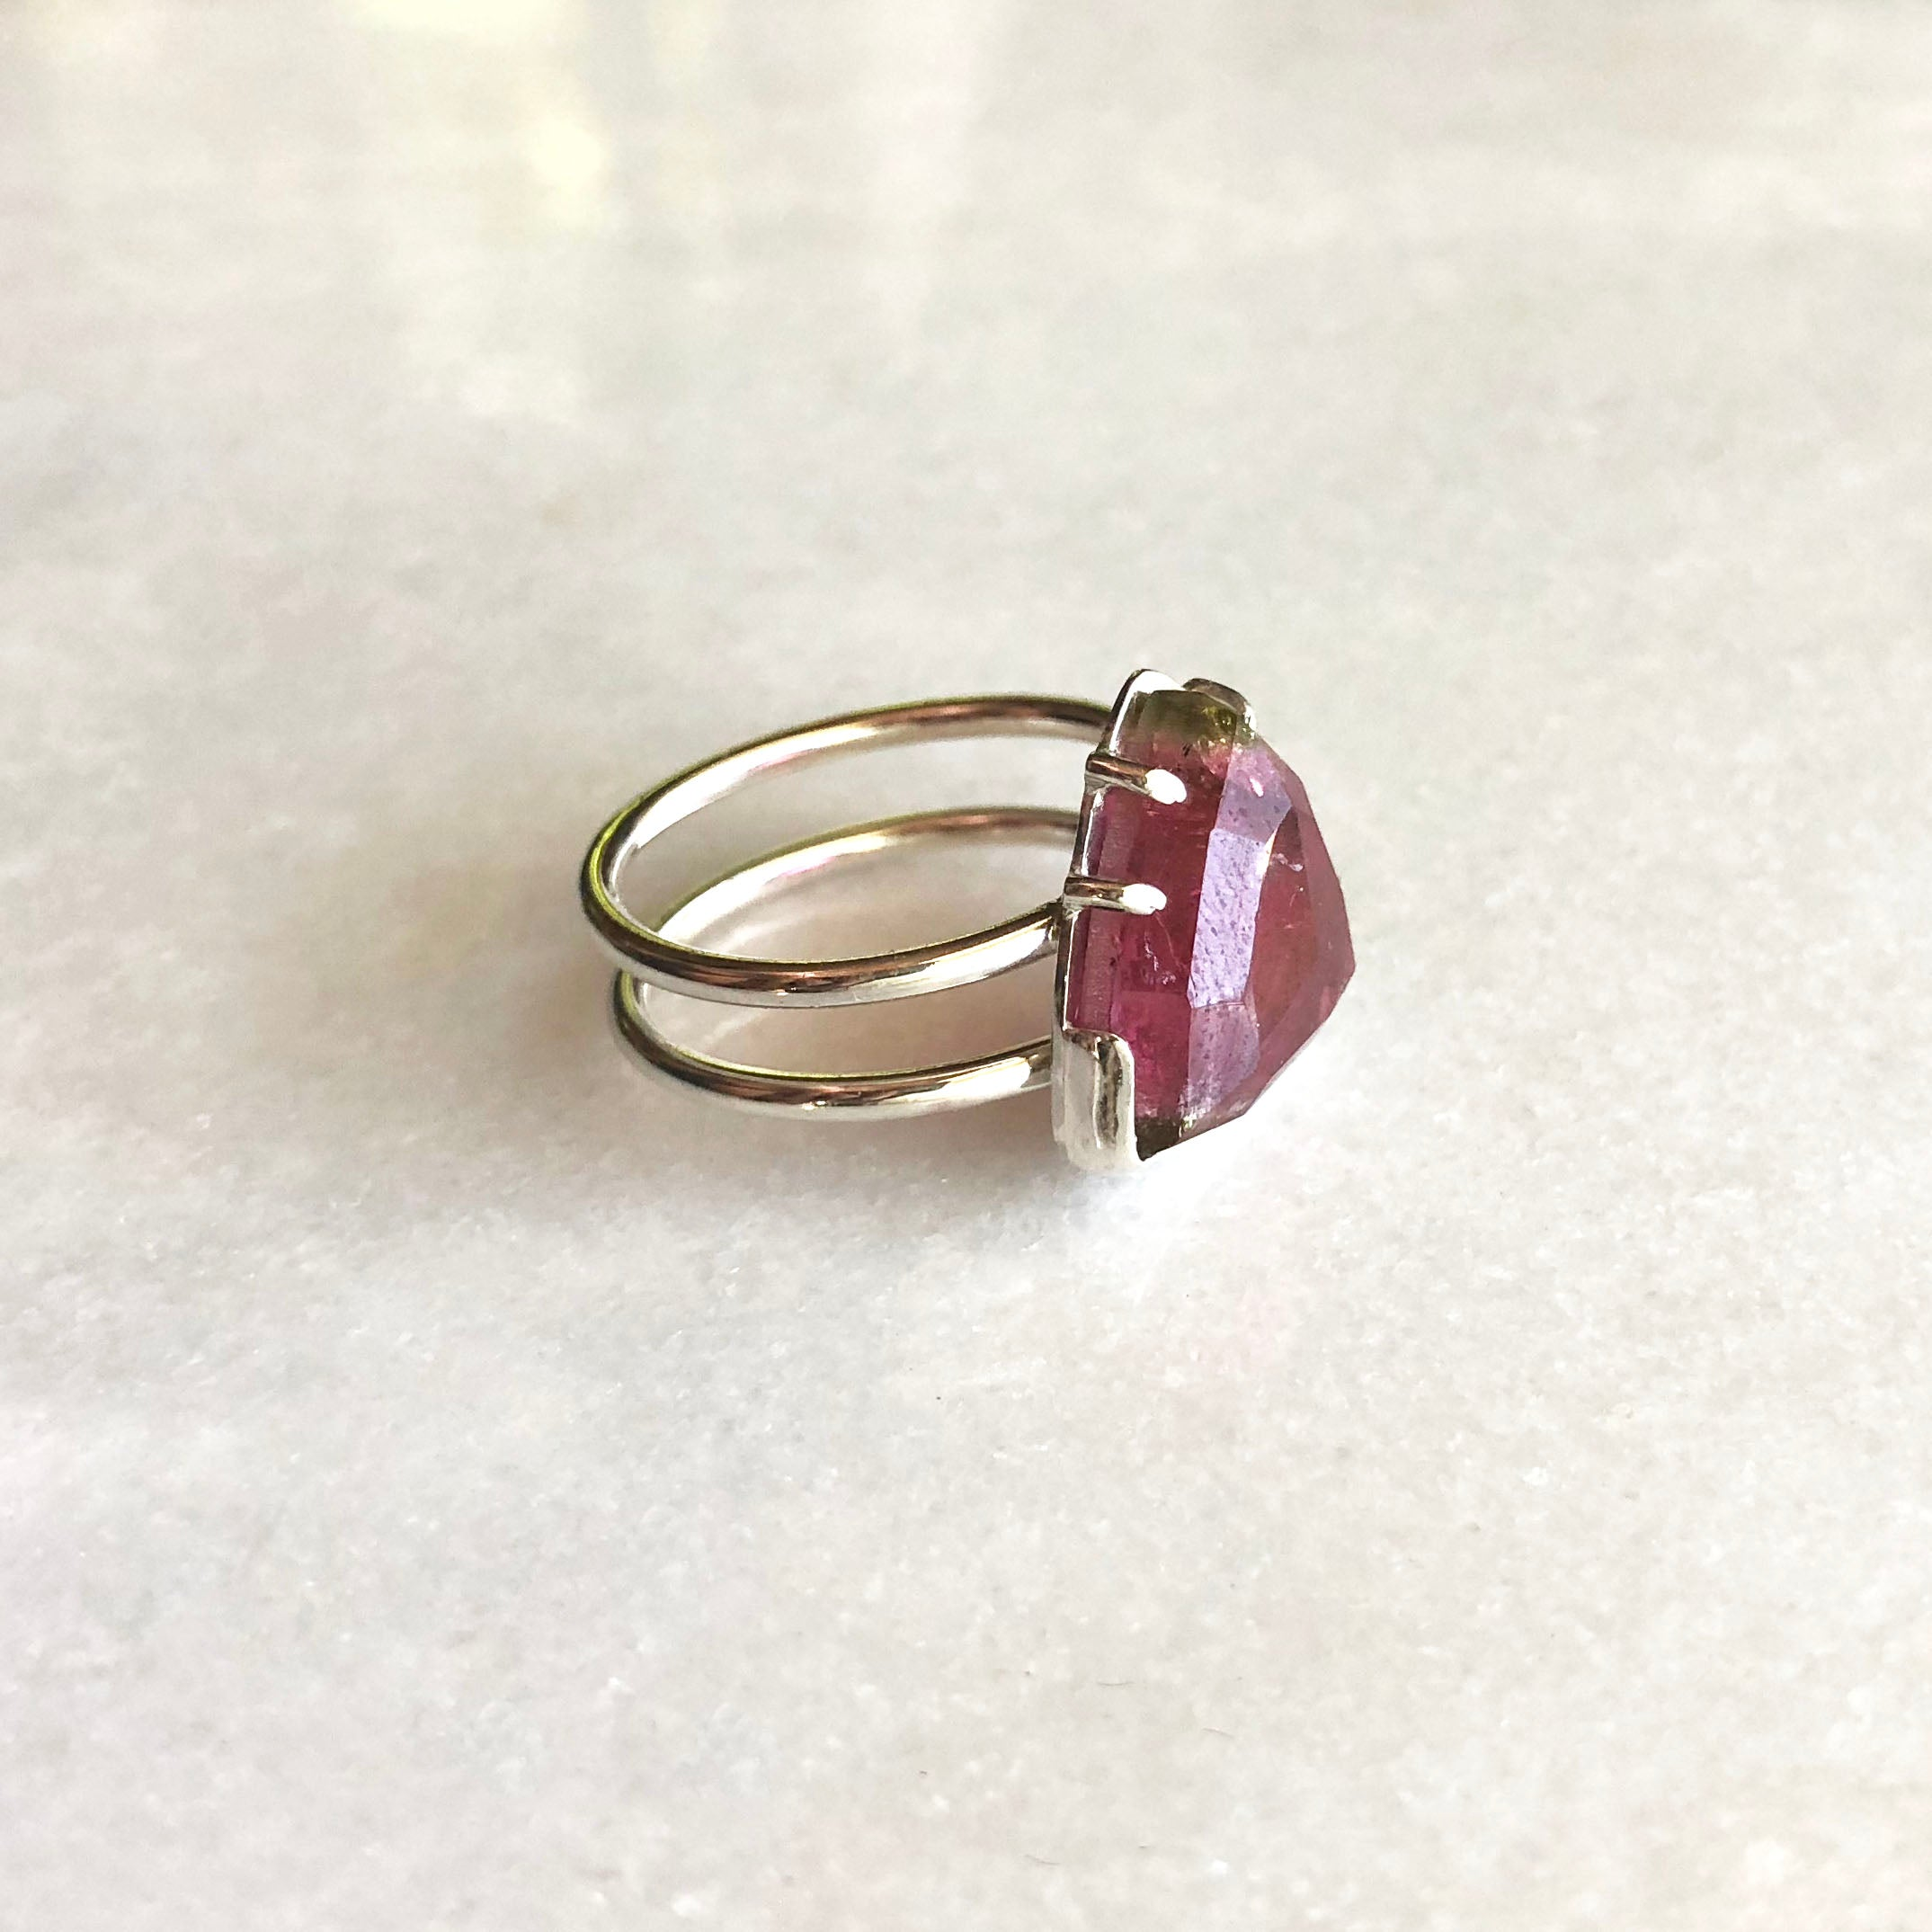 Watermelon Tourmaline Ring by Rockhaus Metals